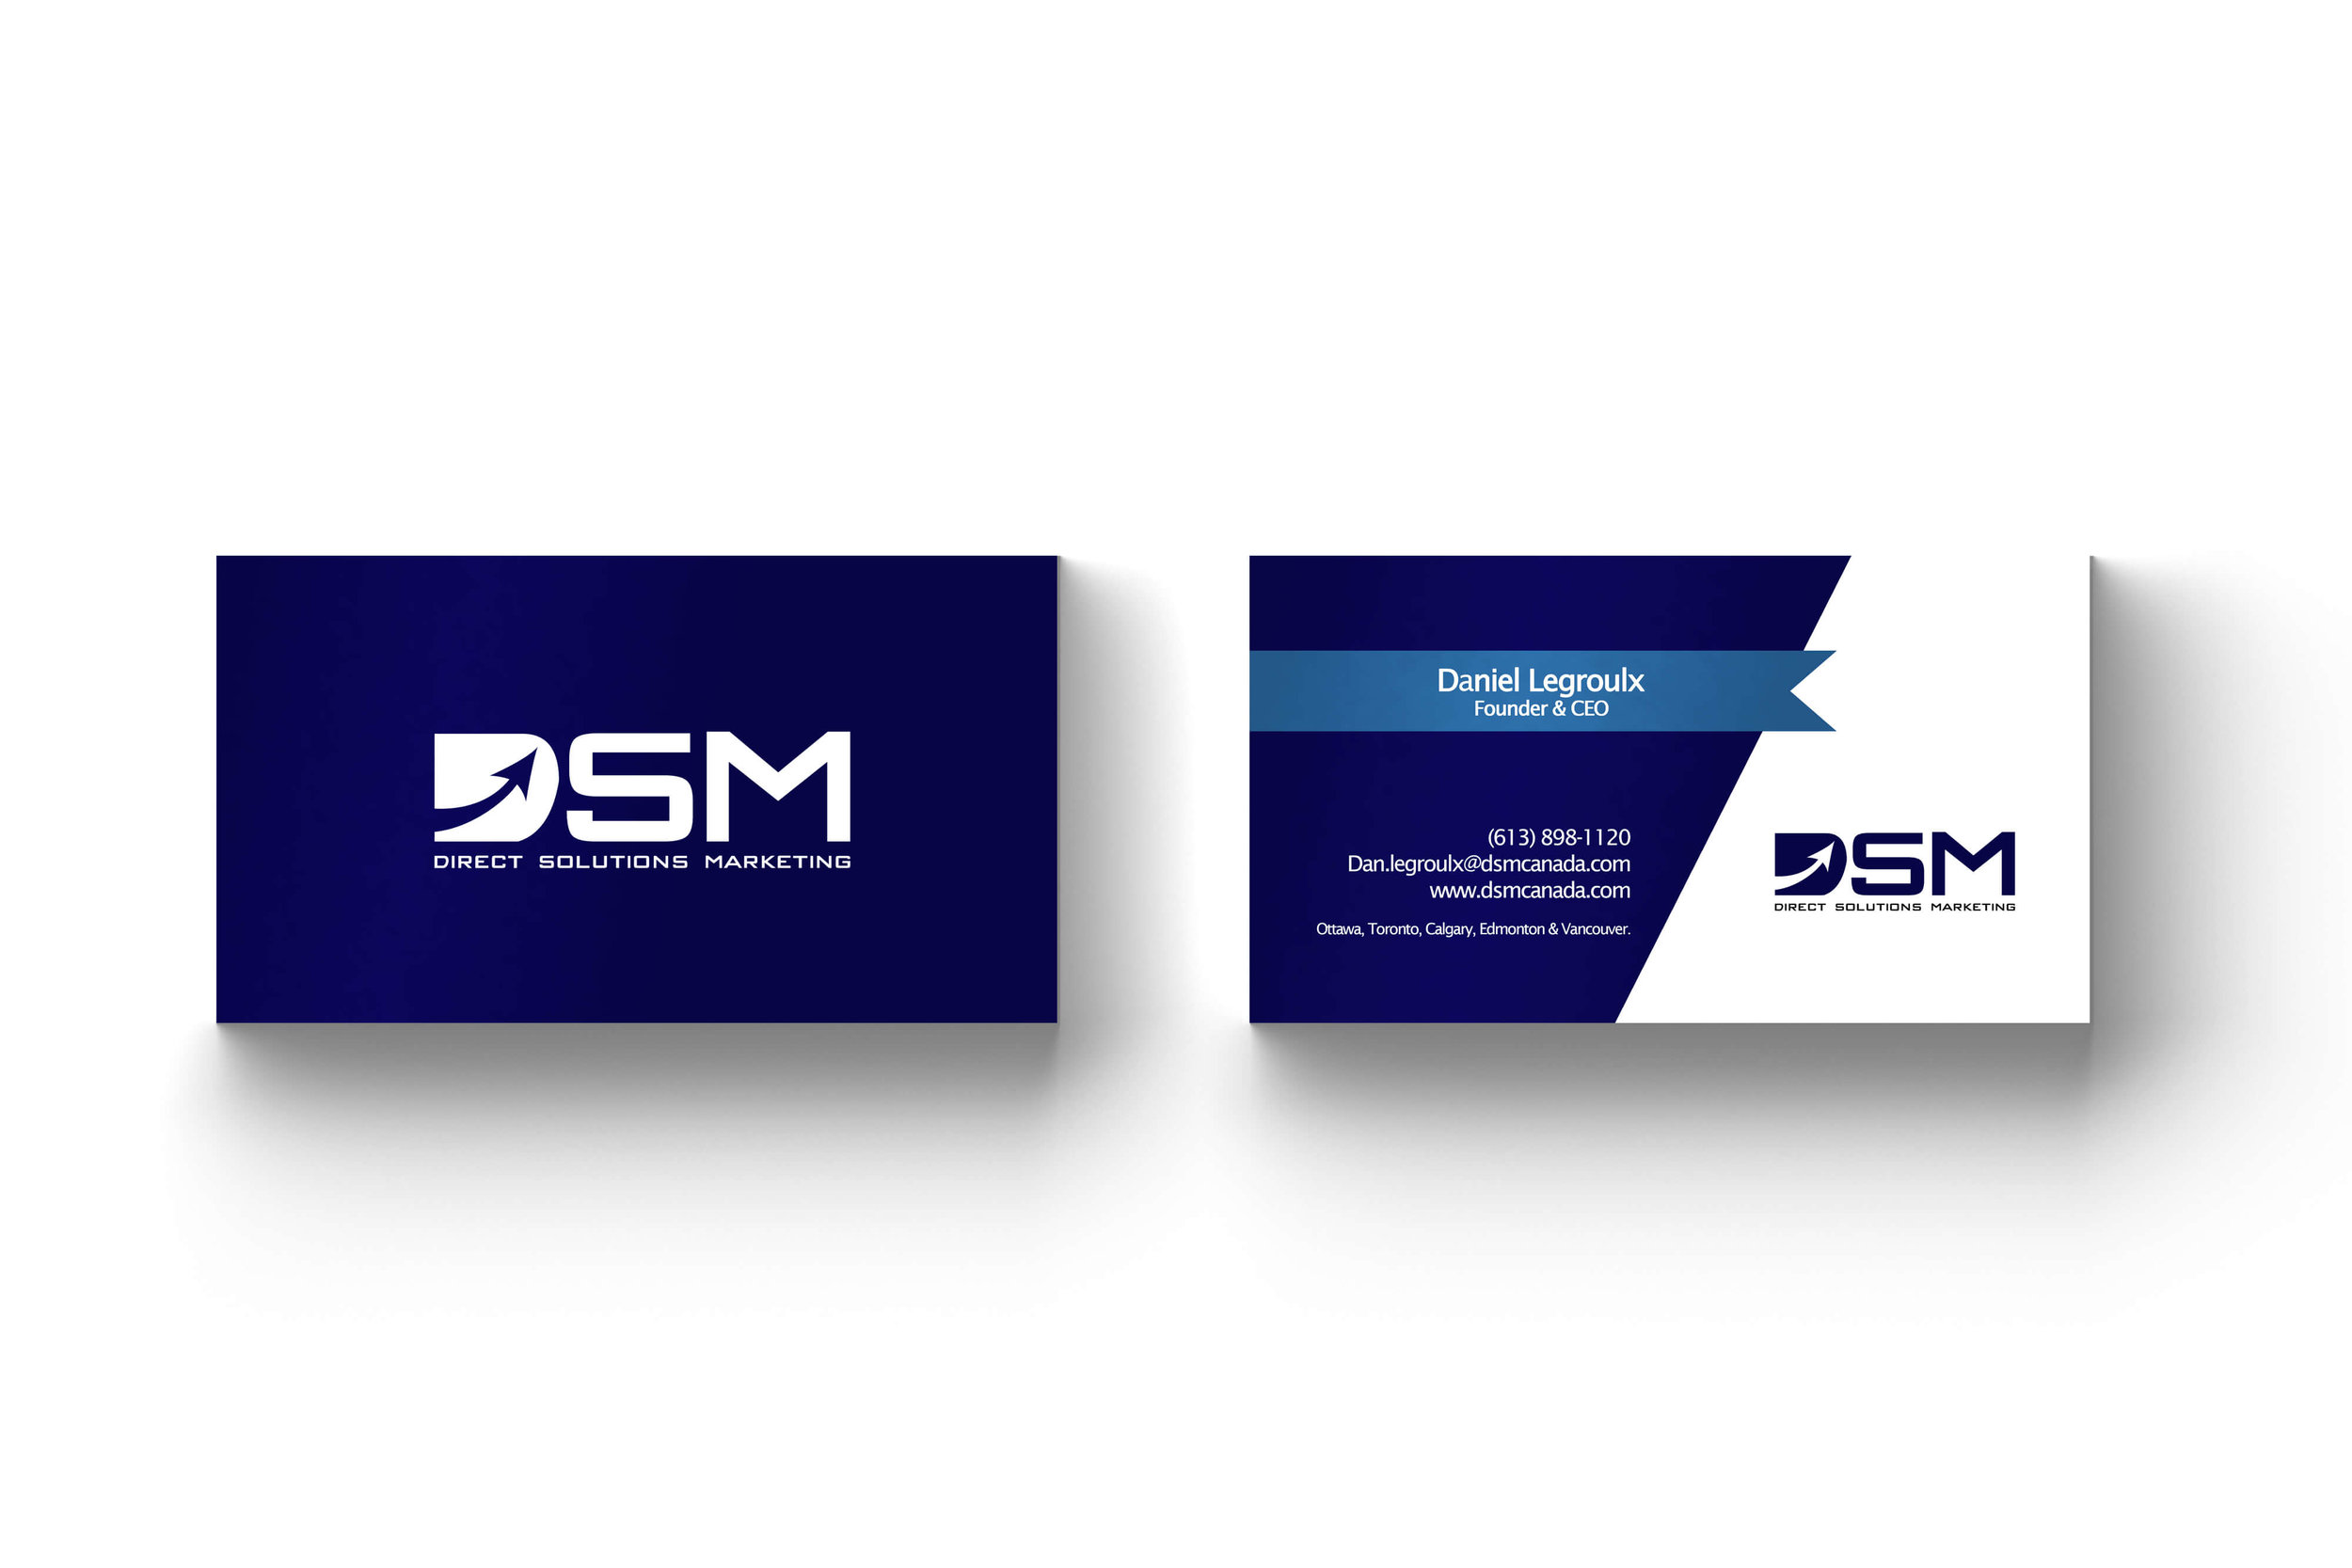 Business Cards for Direct Solutions Marketing